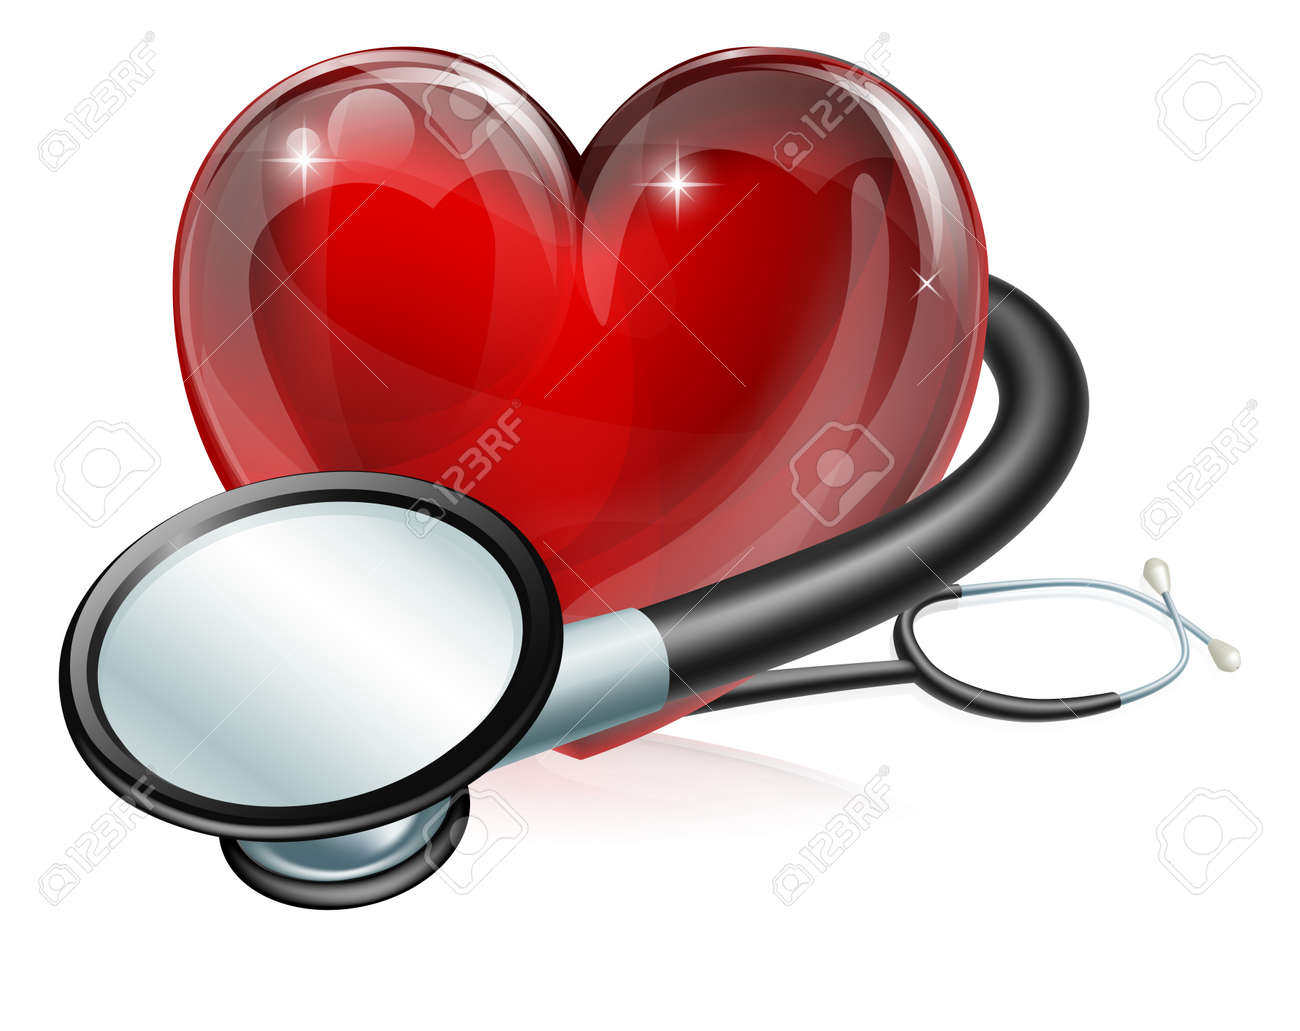 Medical concept illustration of heart shaped symbol and stethoscope - 14366695